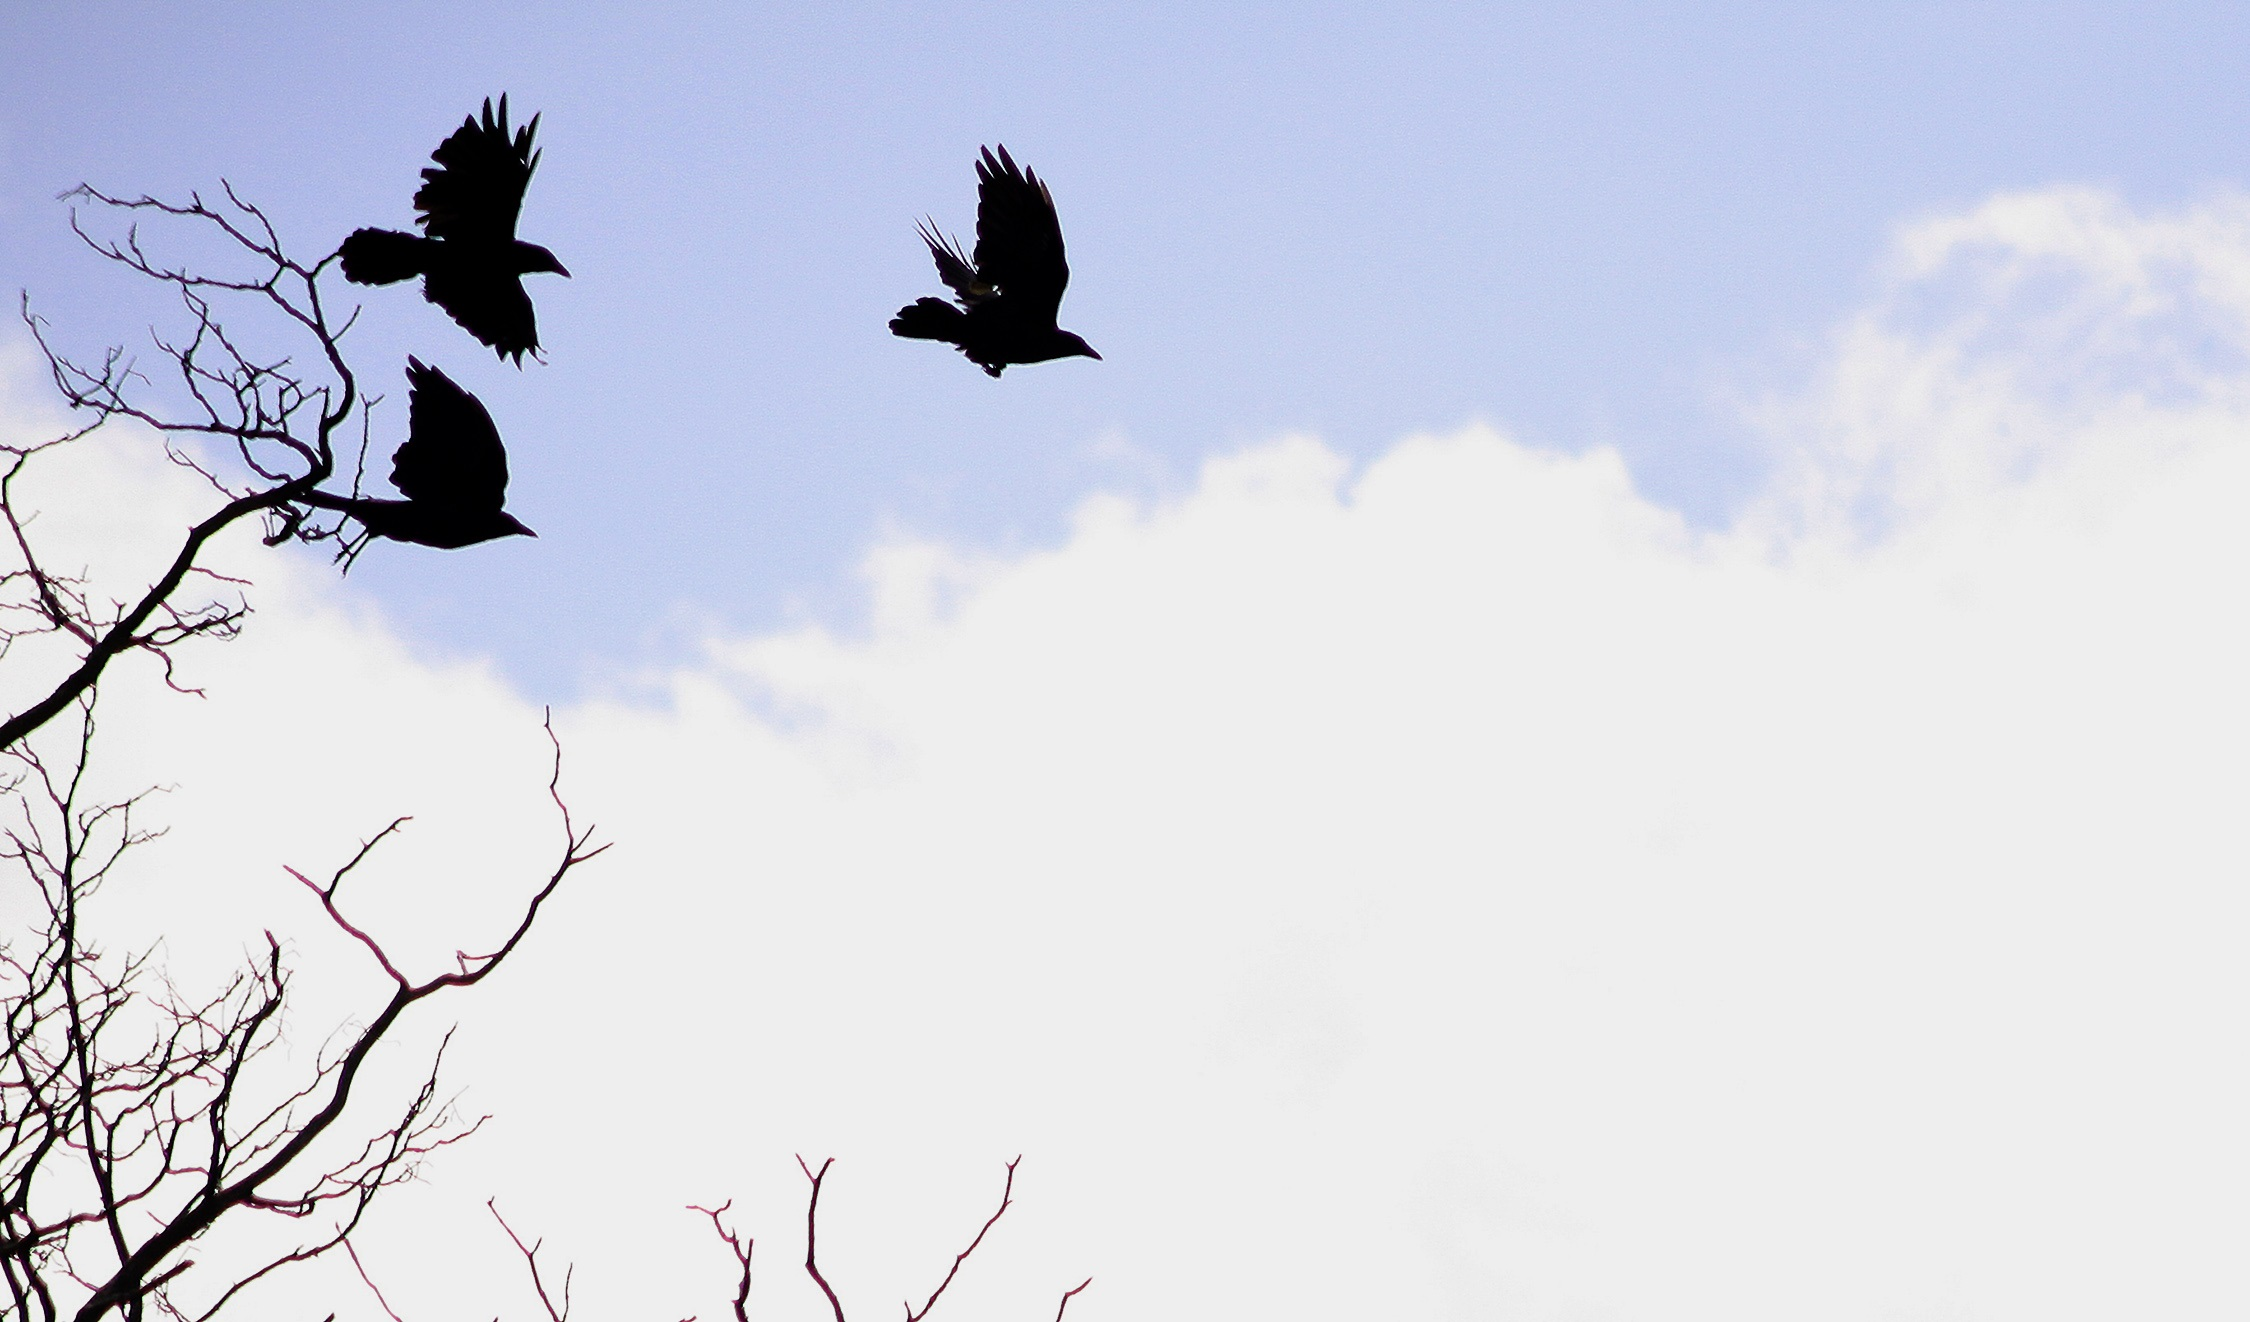 Flying Crows.